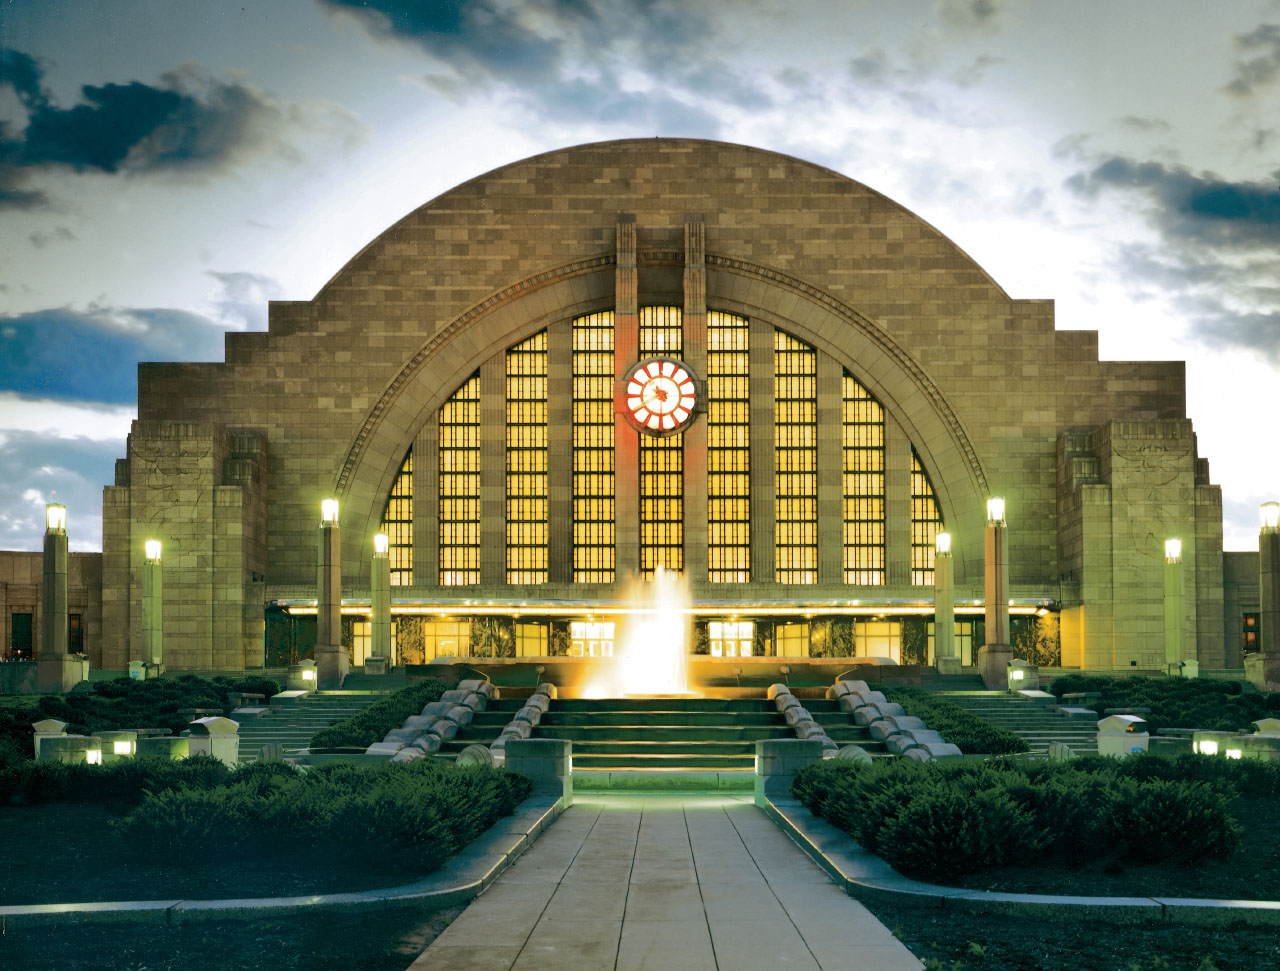 Art Deco Style & Light Art Deco In Cincinnati Union Terminal And Carew Tower